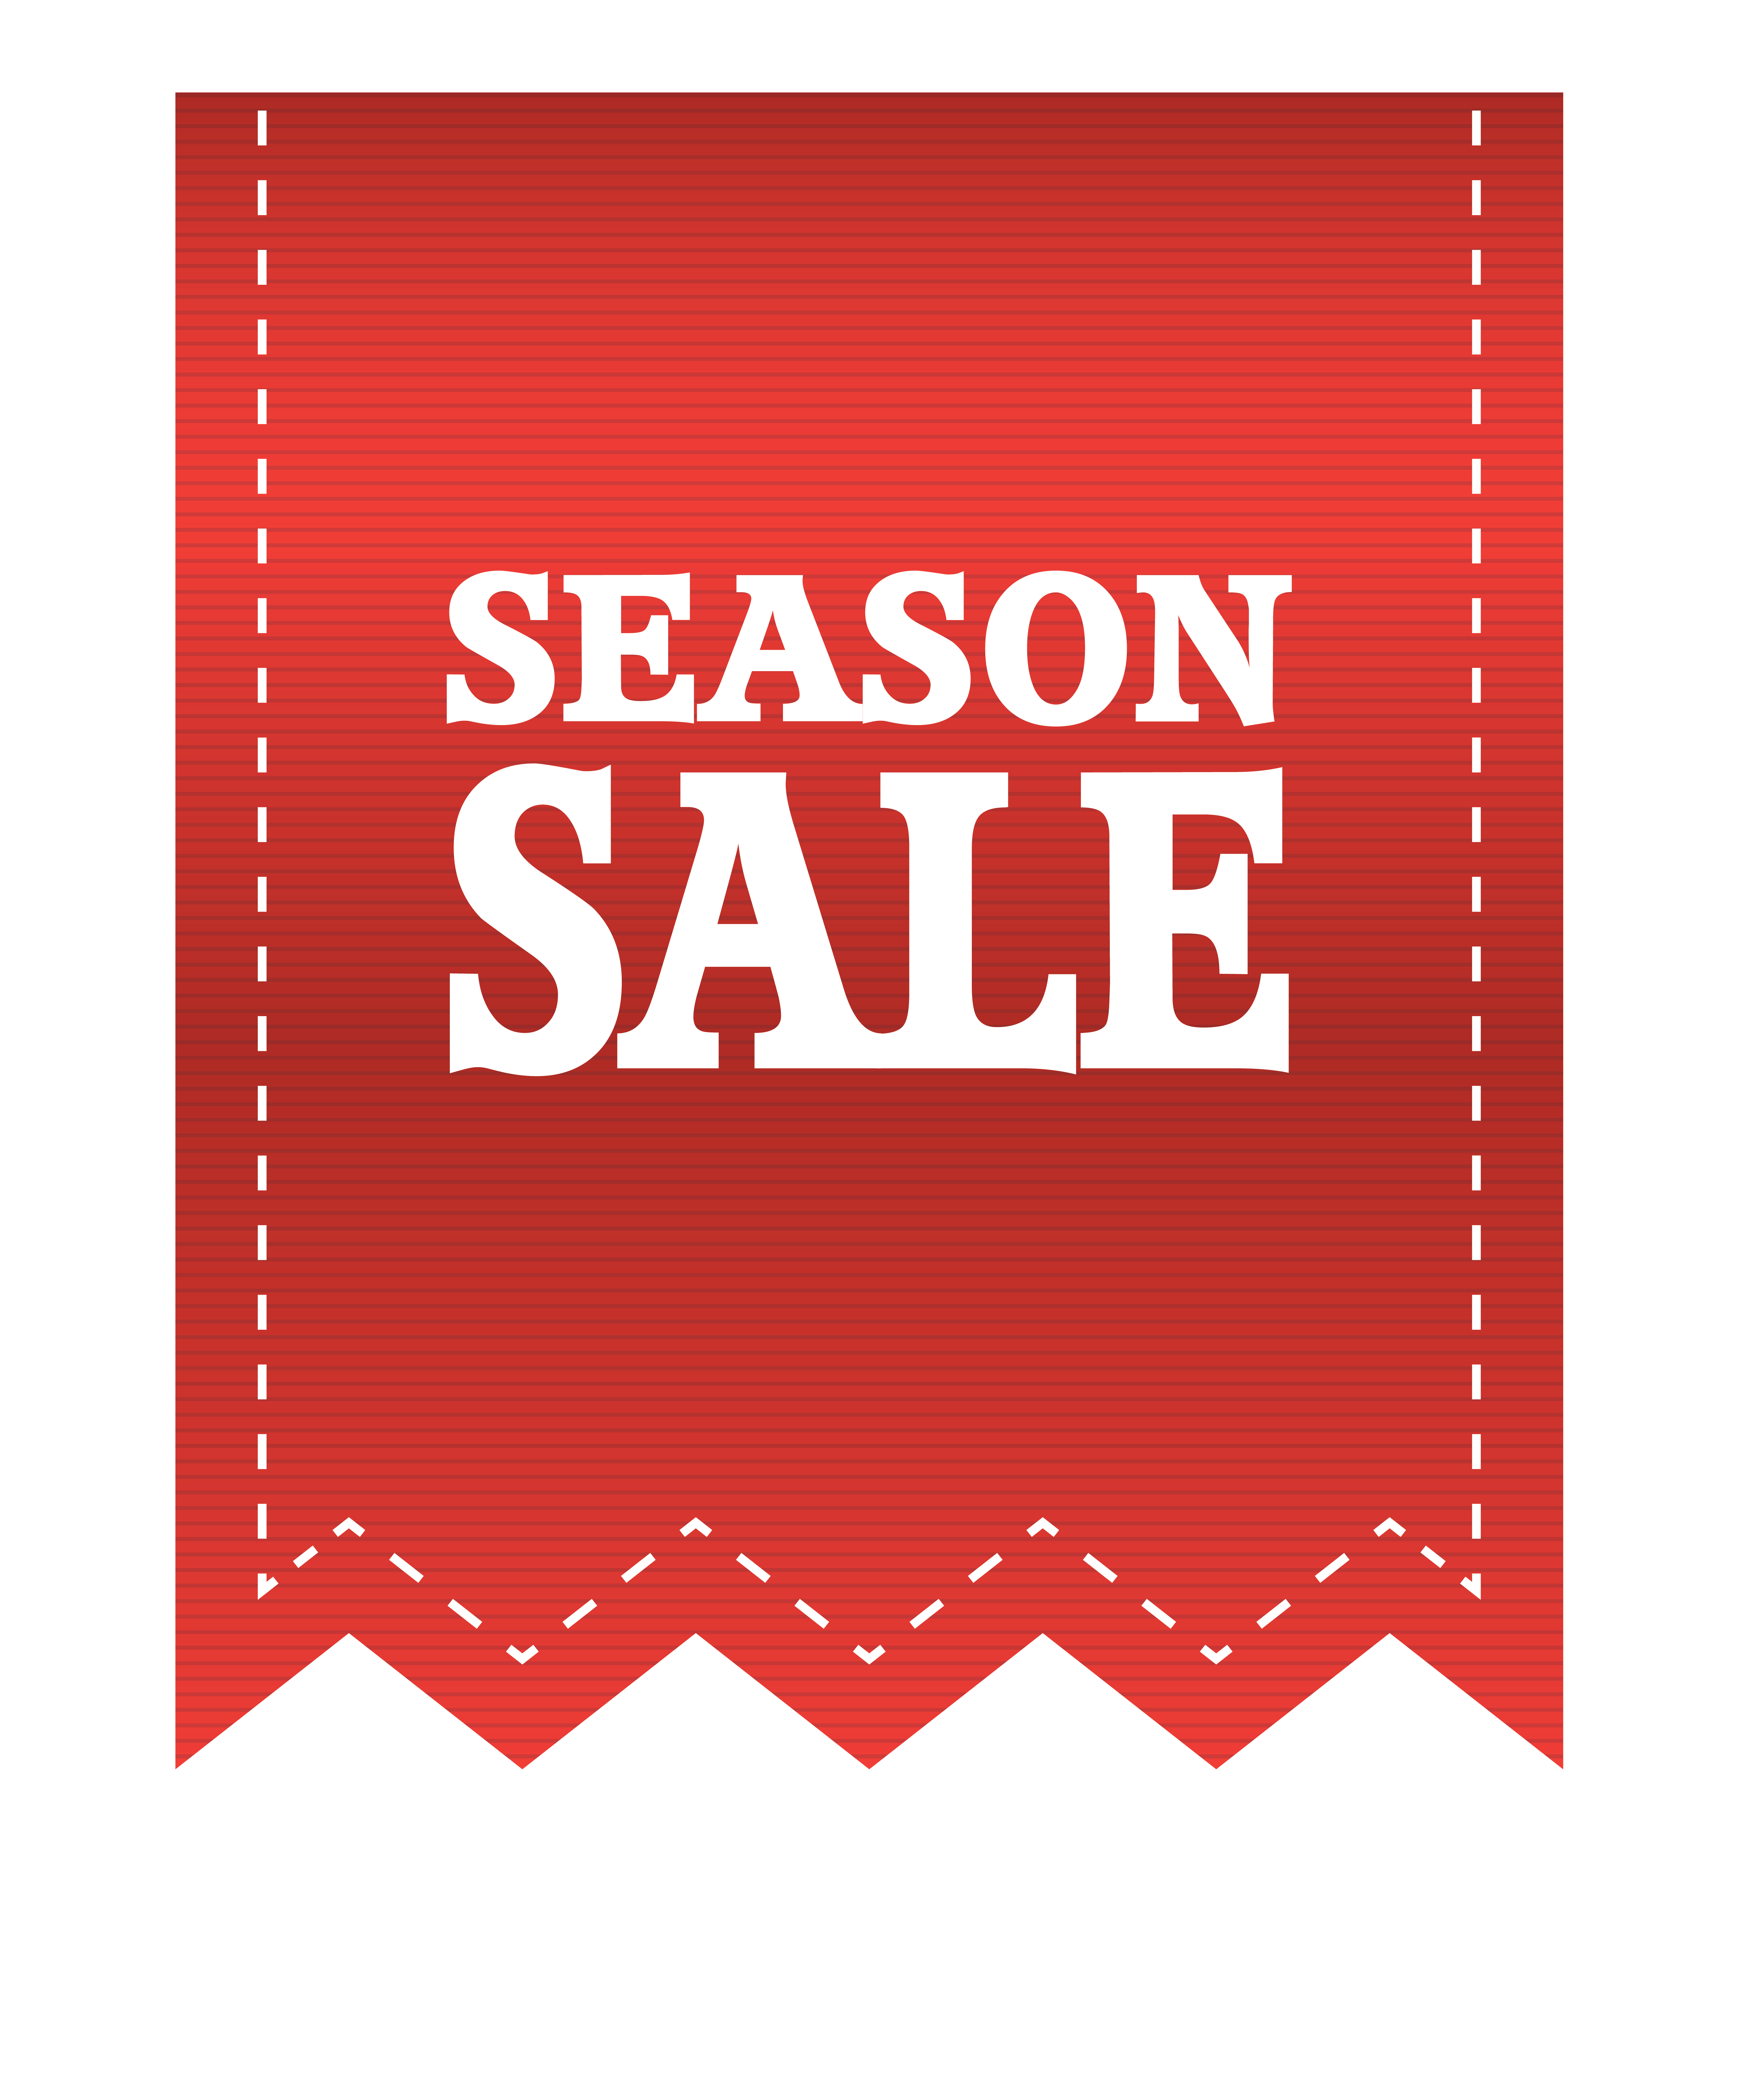 Sale banner png. Red season label clipart